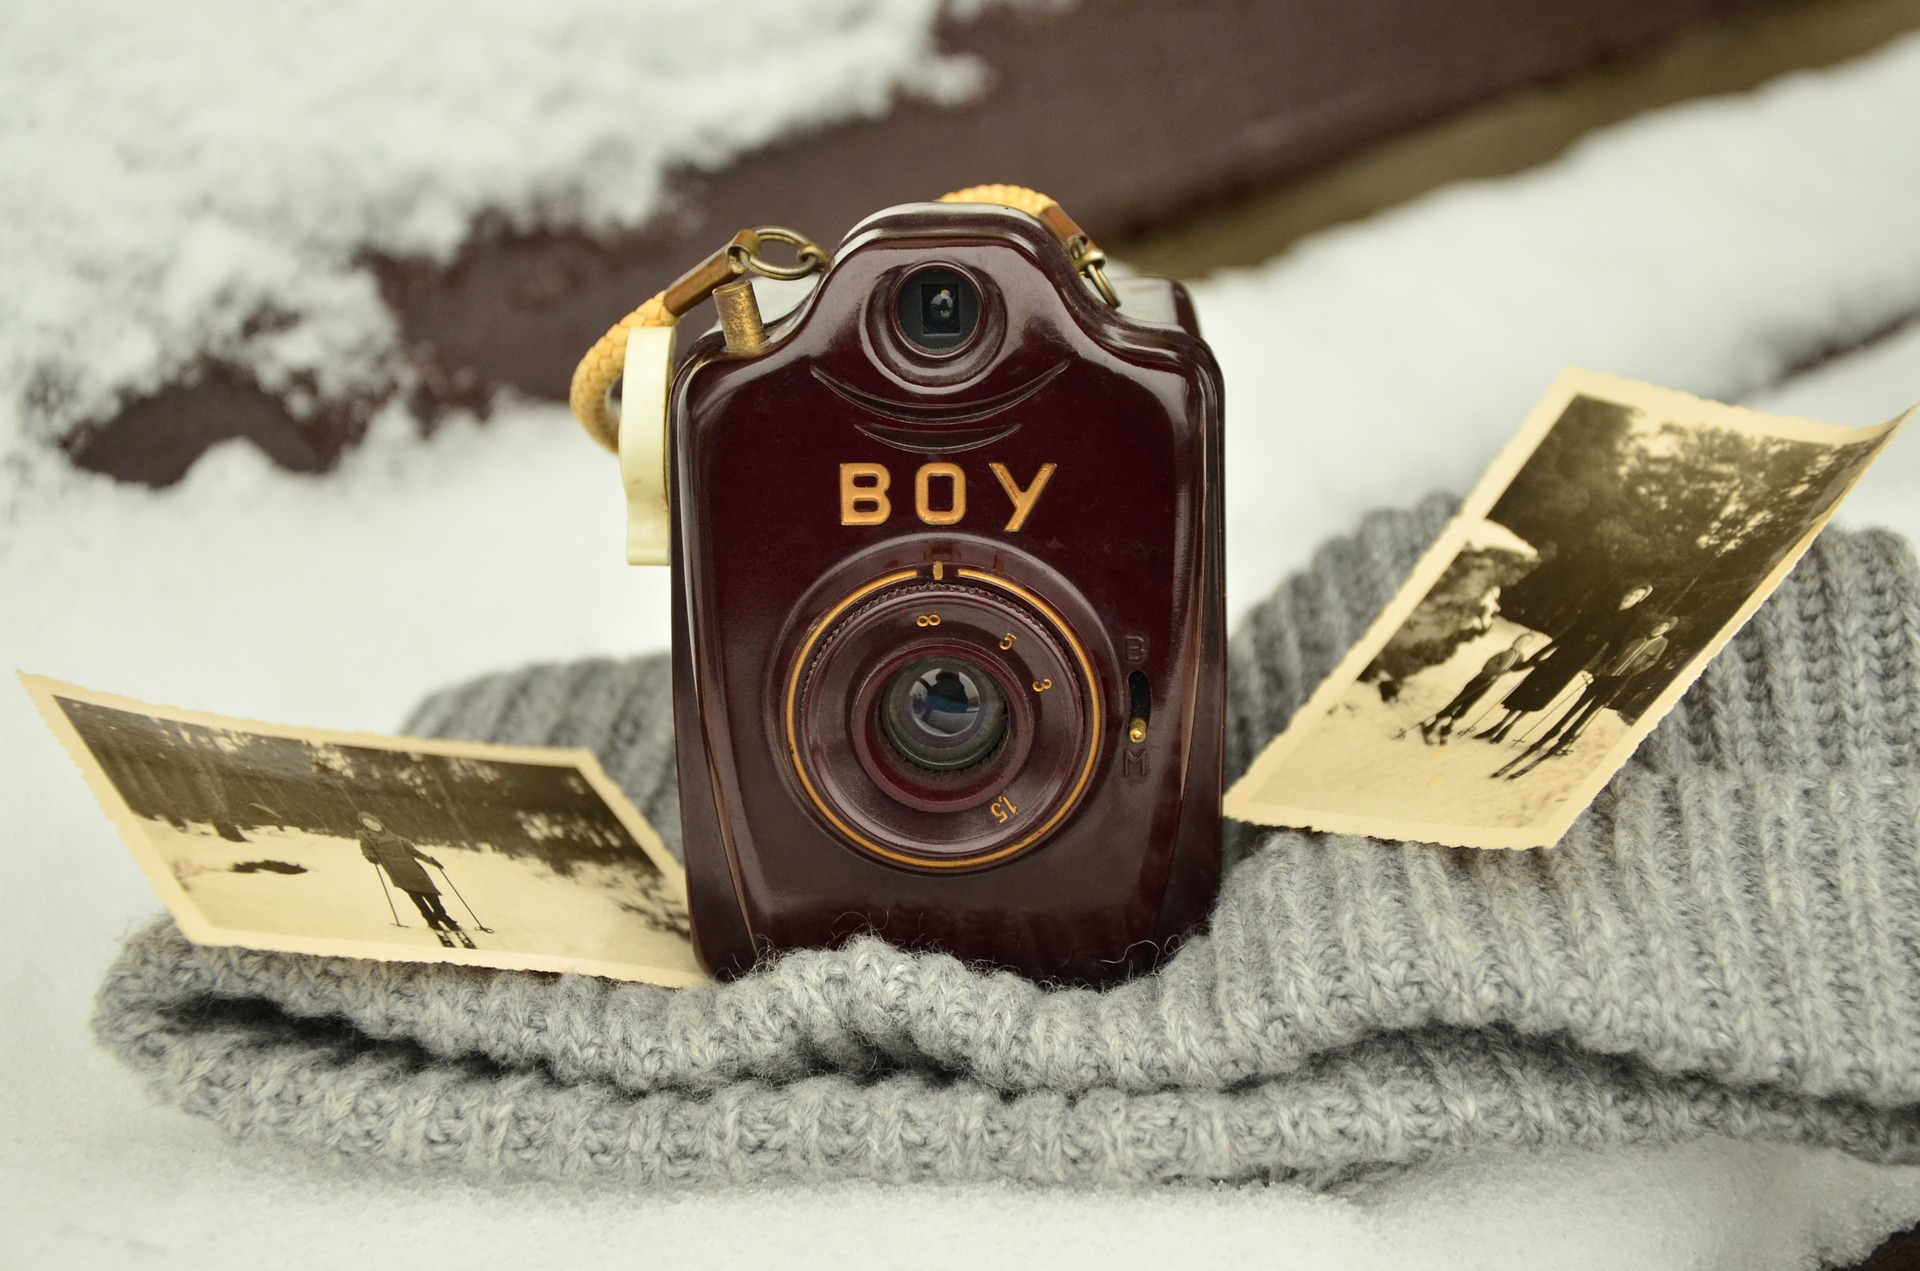 Storing Old Photos and Preserving Precious Memories - Dark place